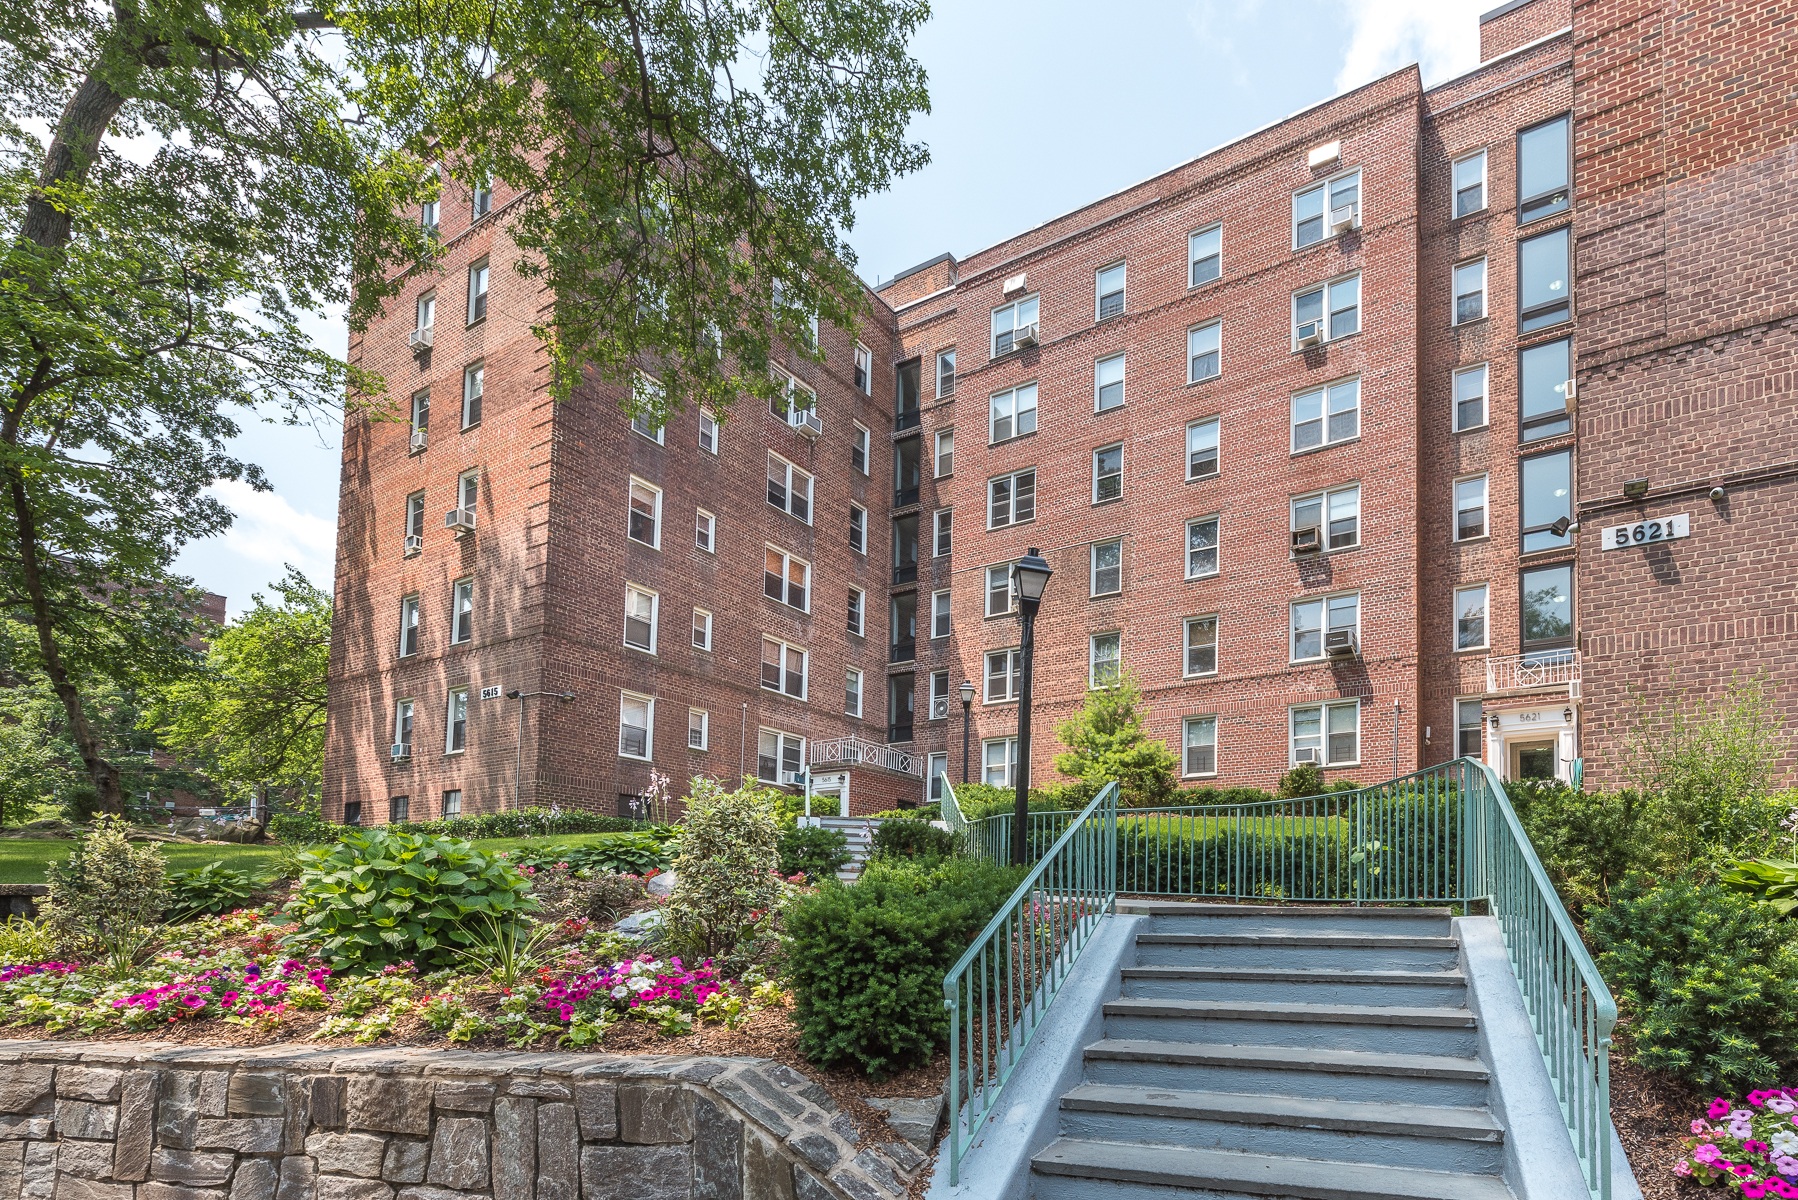 Co-op for Sale at Large 1 BR with Private Patio 5639 Netherland Avenue 1C Riverdale, New York, 10471 United States